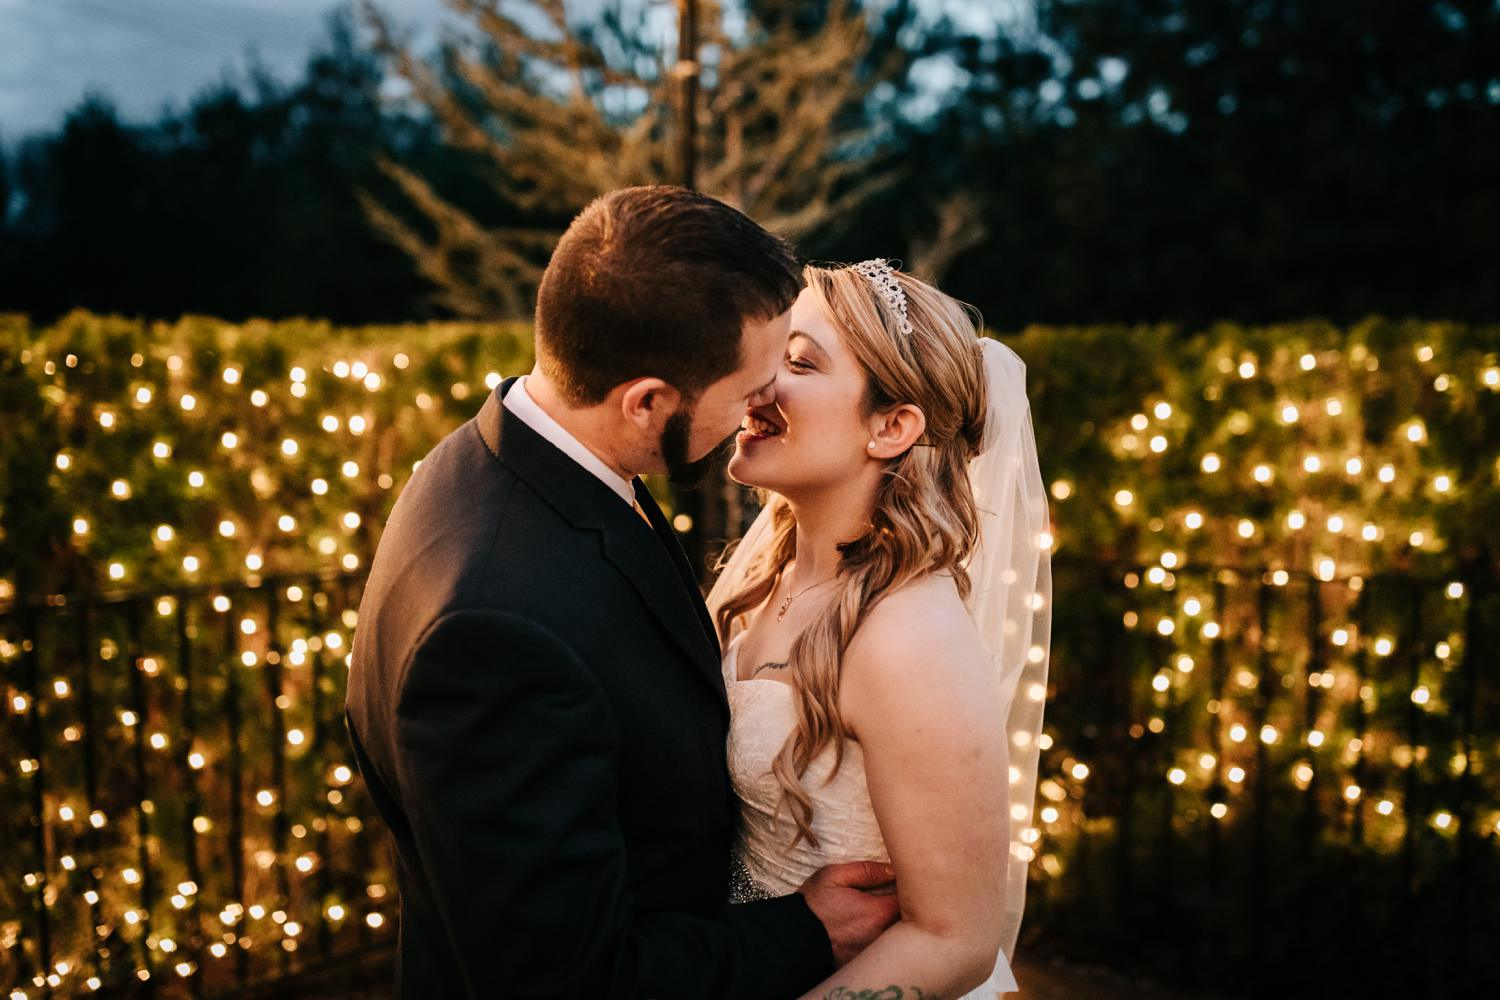 Bride and groom surrounded by lights at night kissing